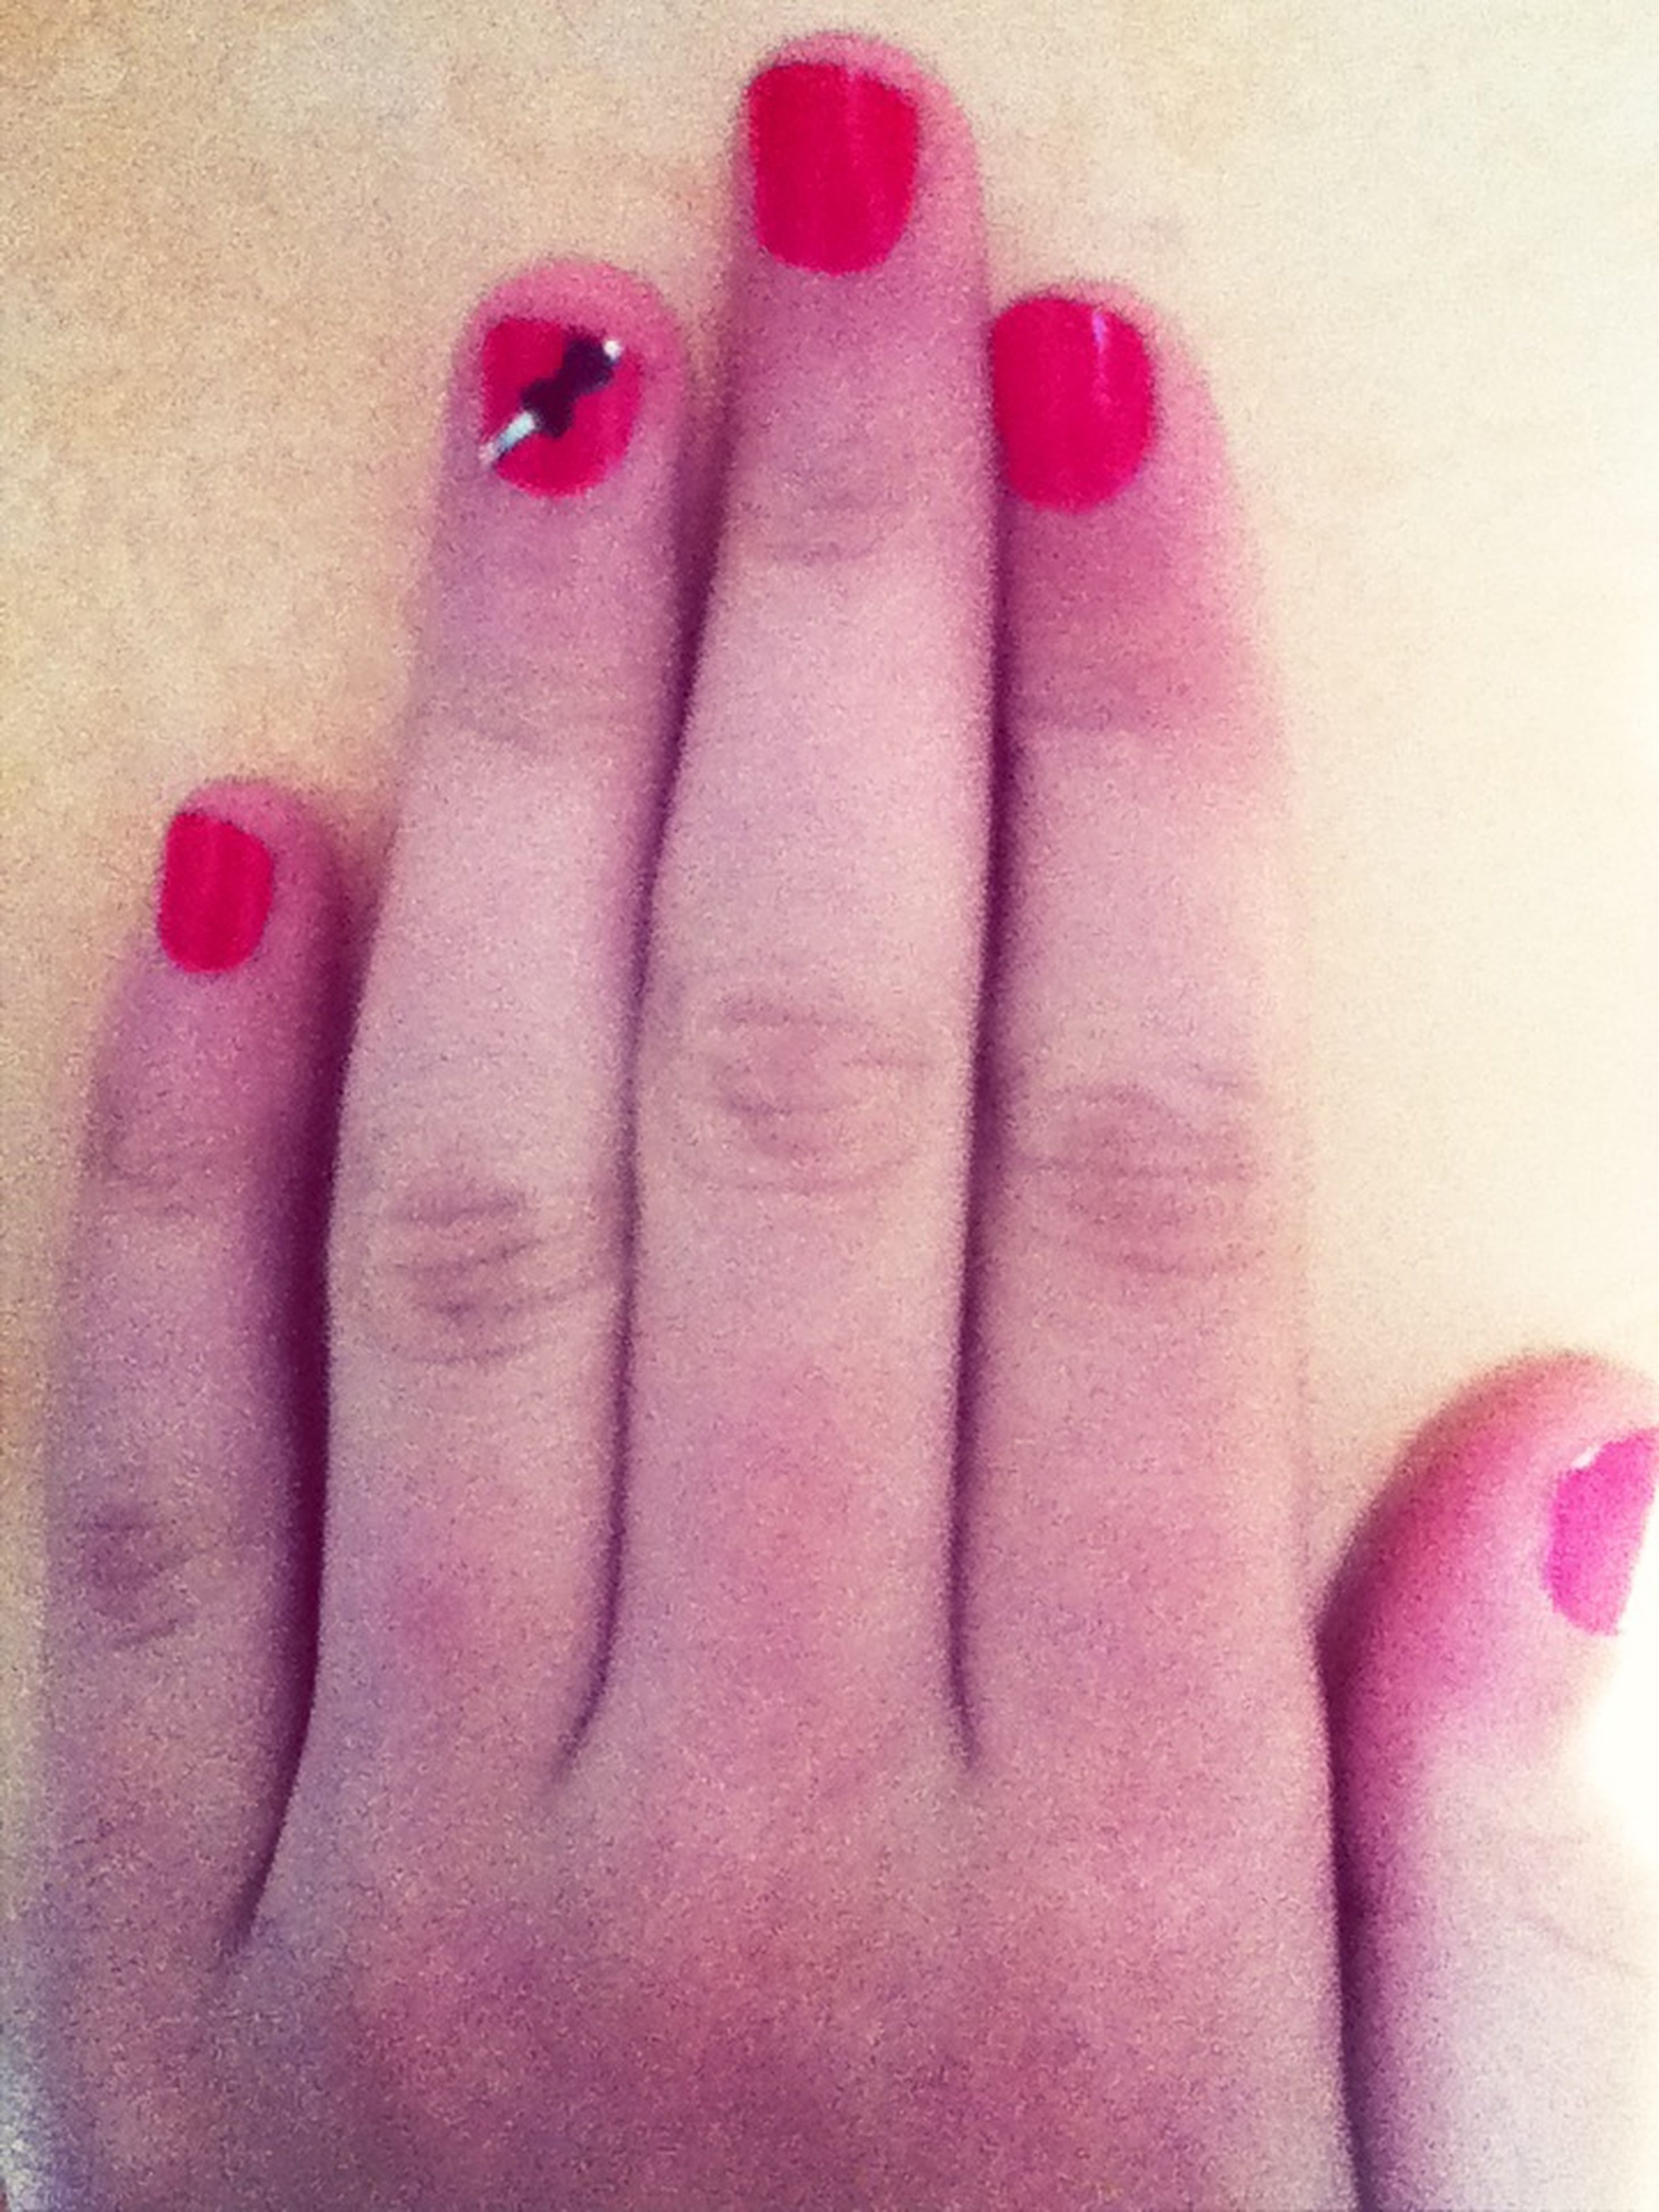 person, indoors, part of, lifestyles, femininity, human finger, close-up, nail polish, pink color, human skin, sensuality, cropped, red, leisure activity, fashion